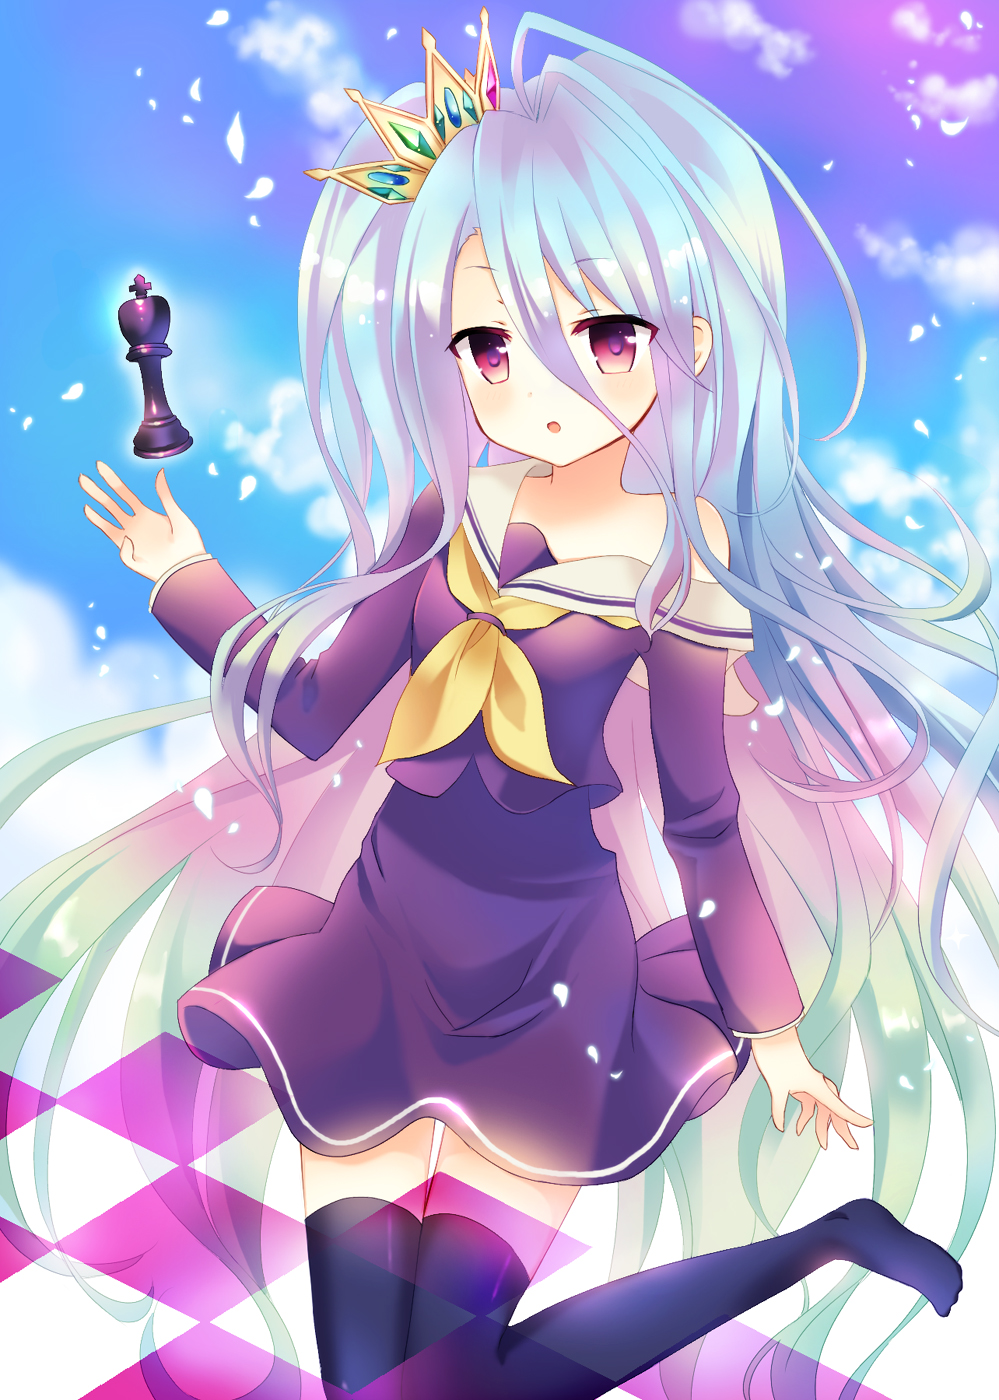 Shiro No Game No Life Zerochan Anime Image Board